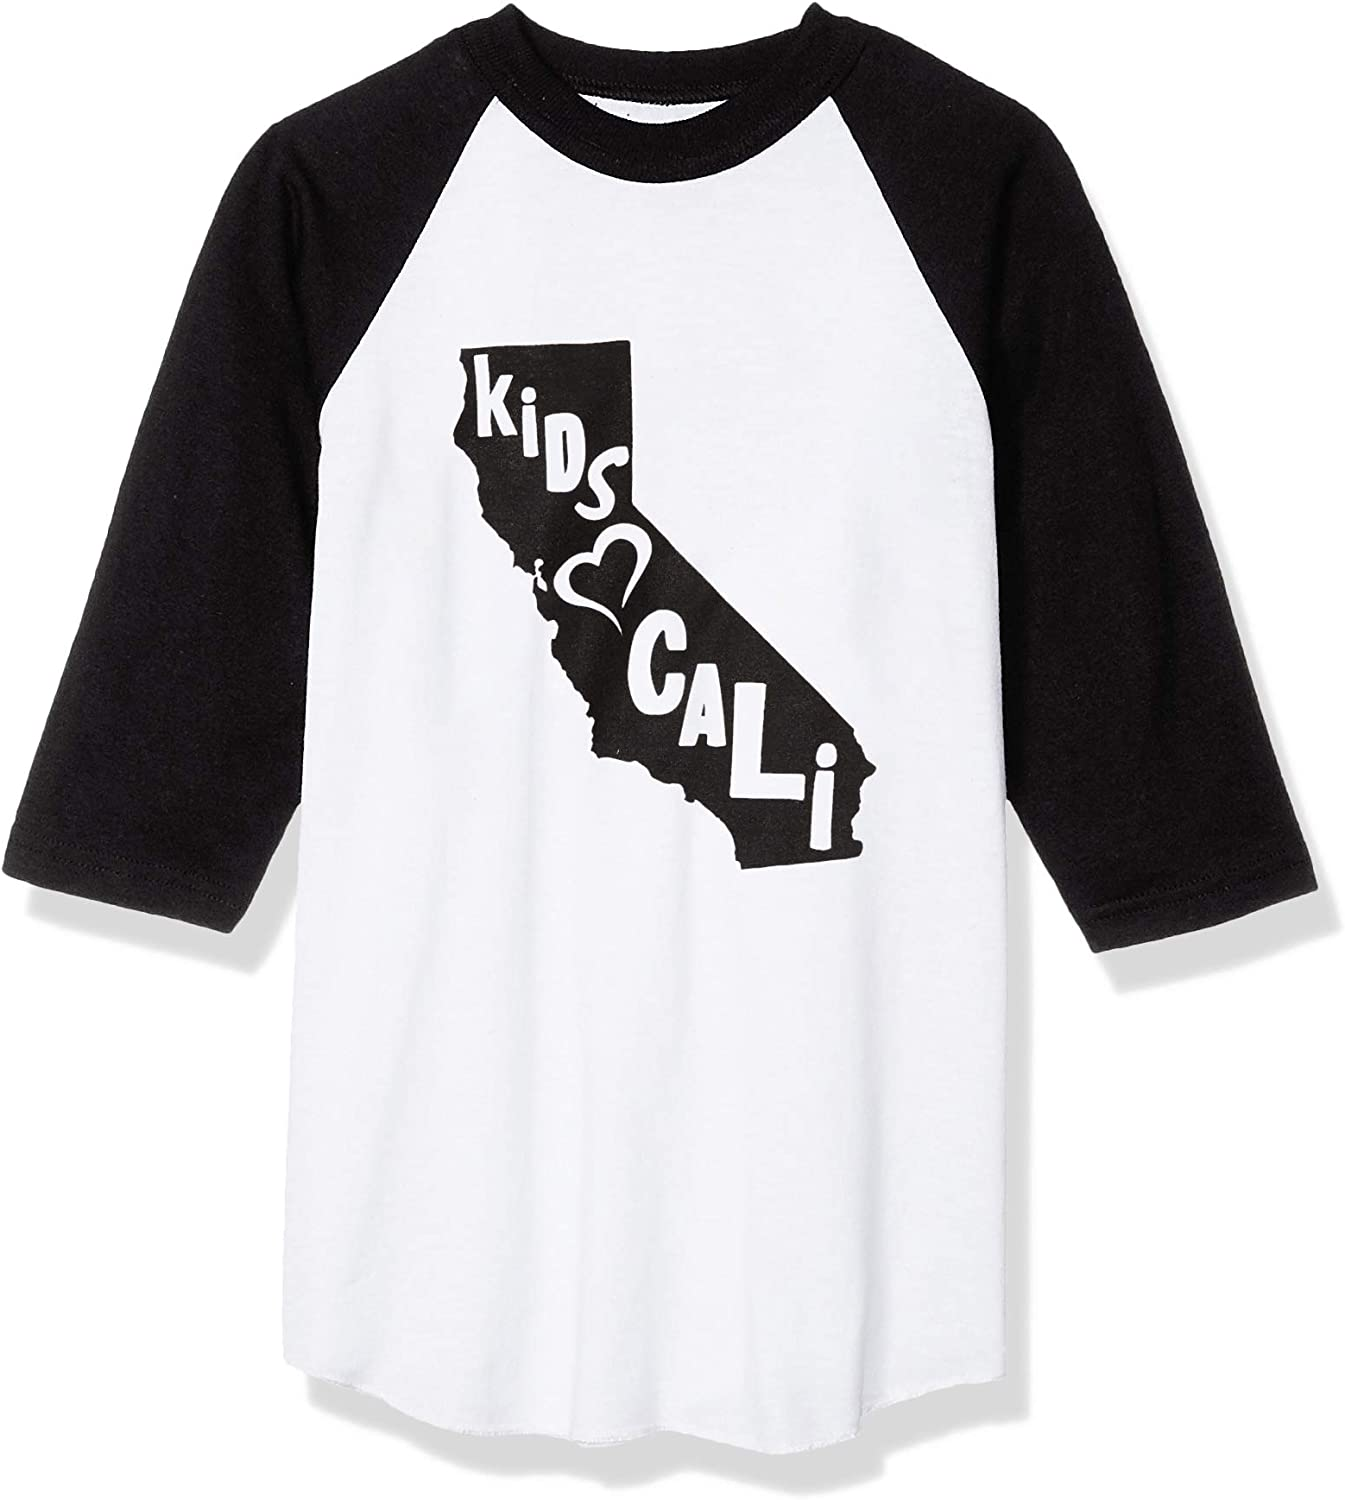 Soffe Kids' T-Shirt